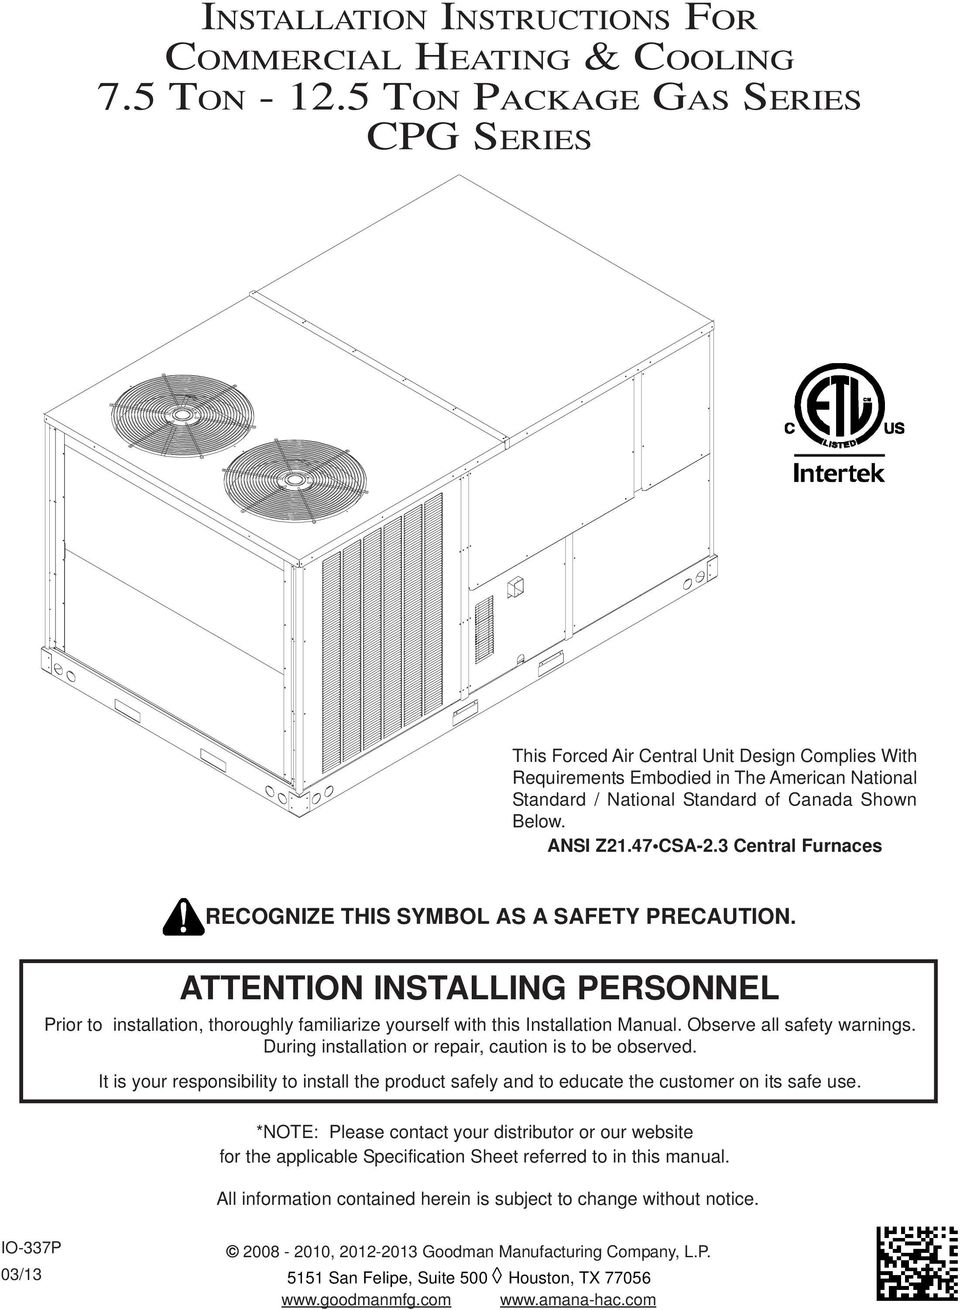 Installation Instructions For Commercial Heating Cooling 75 Ton Refrigeration Wiring Diagram 5 3 Entral Furnaces Reognize This Symbol As A Safety Preaution Attention Installing Personnel Prior To